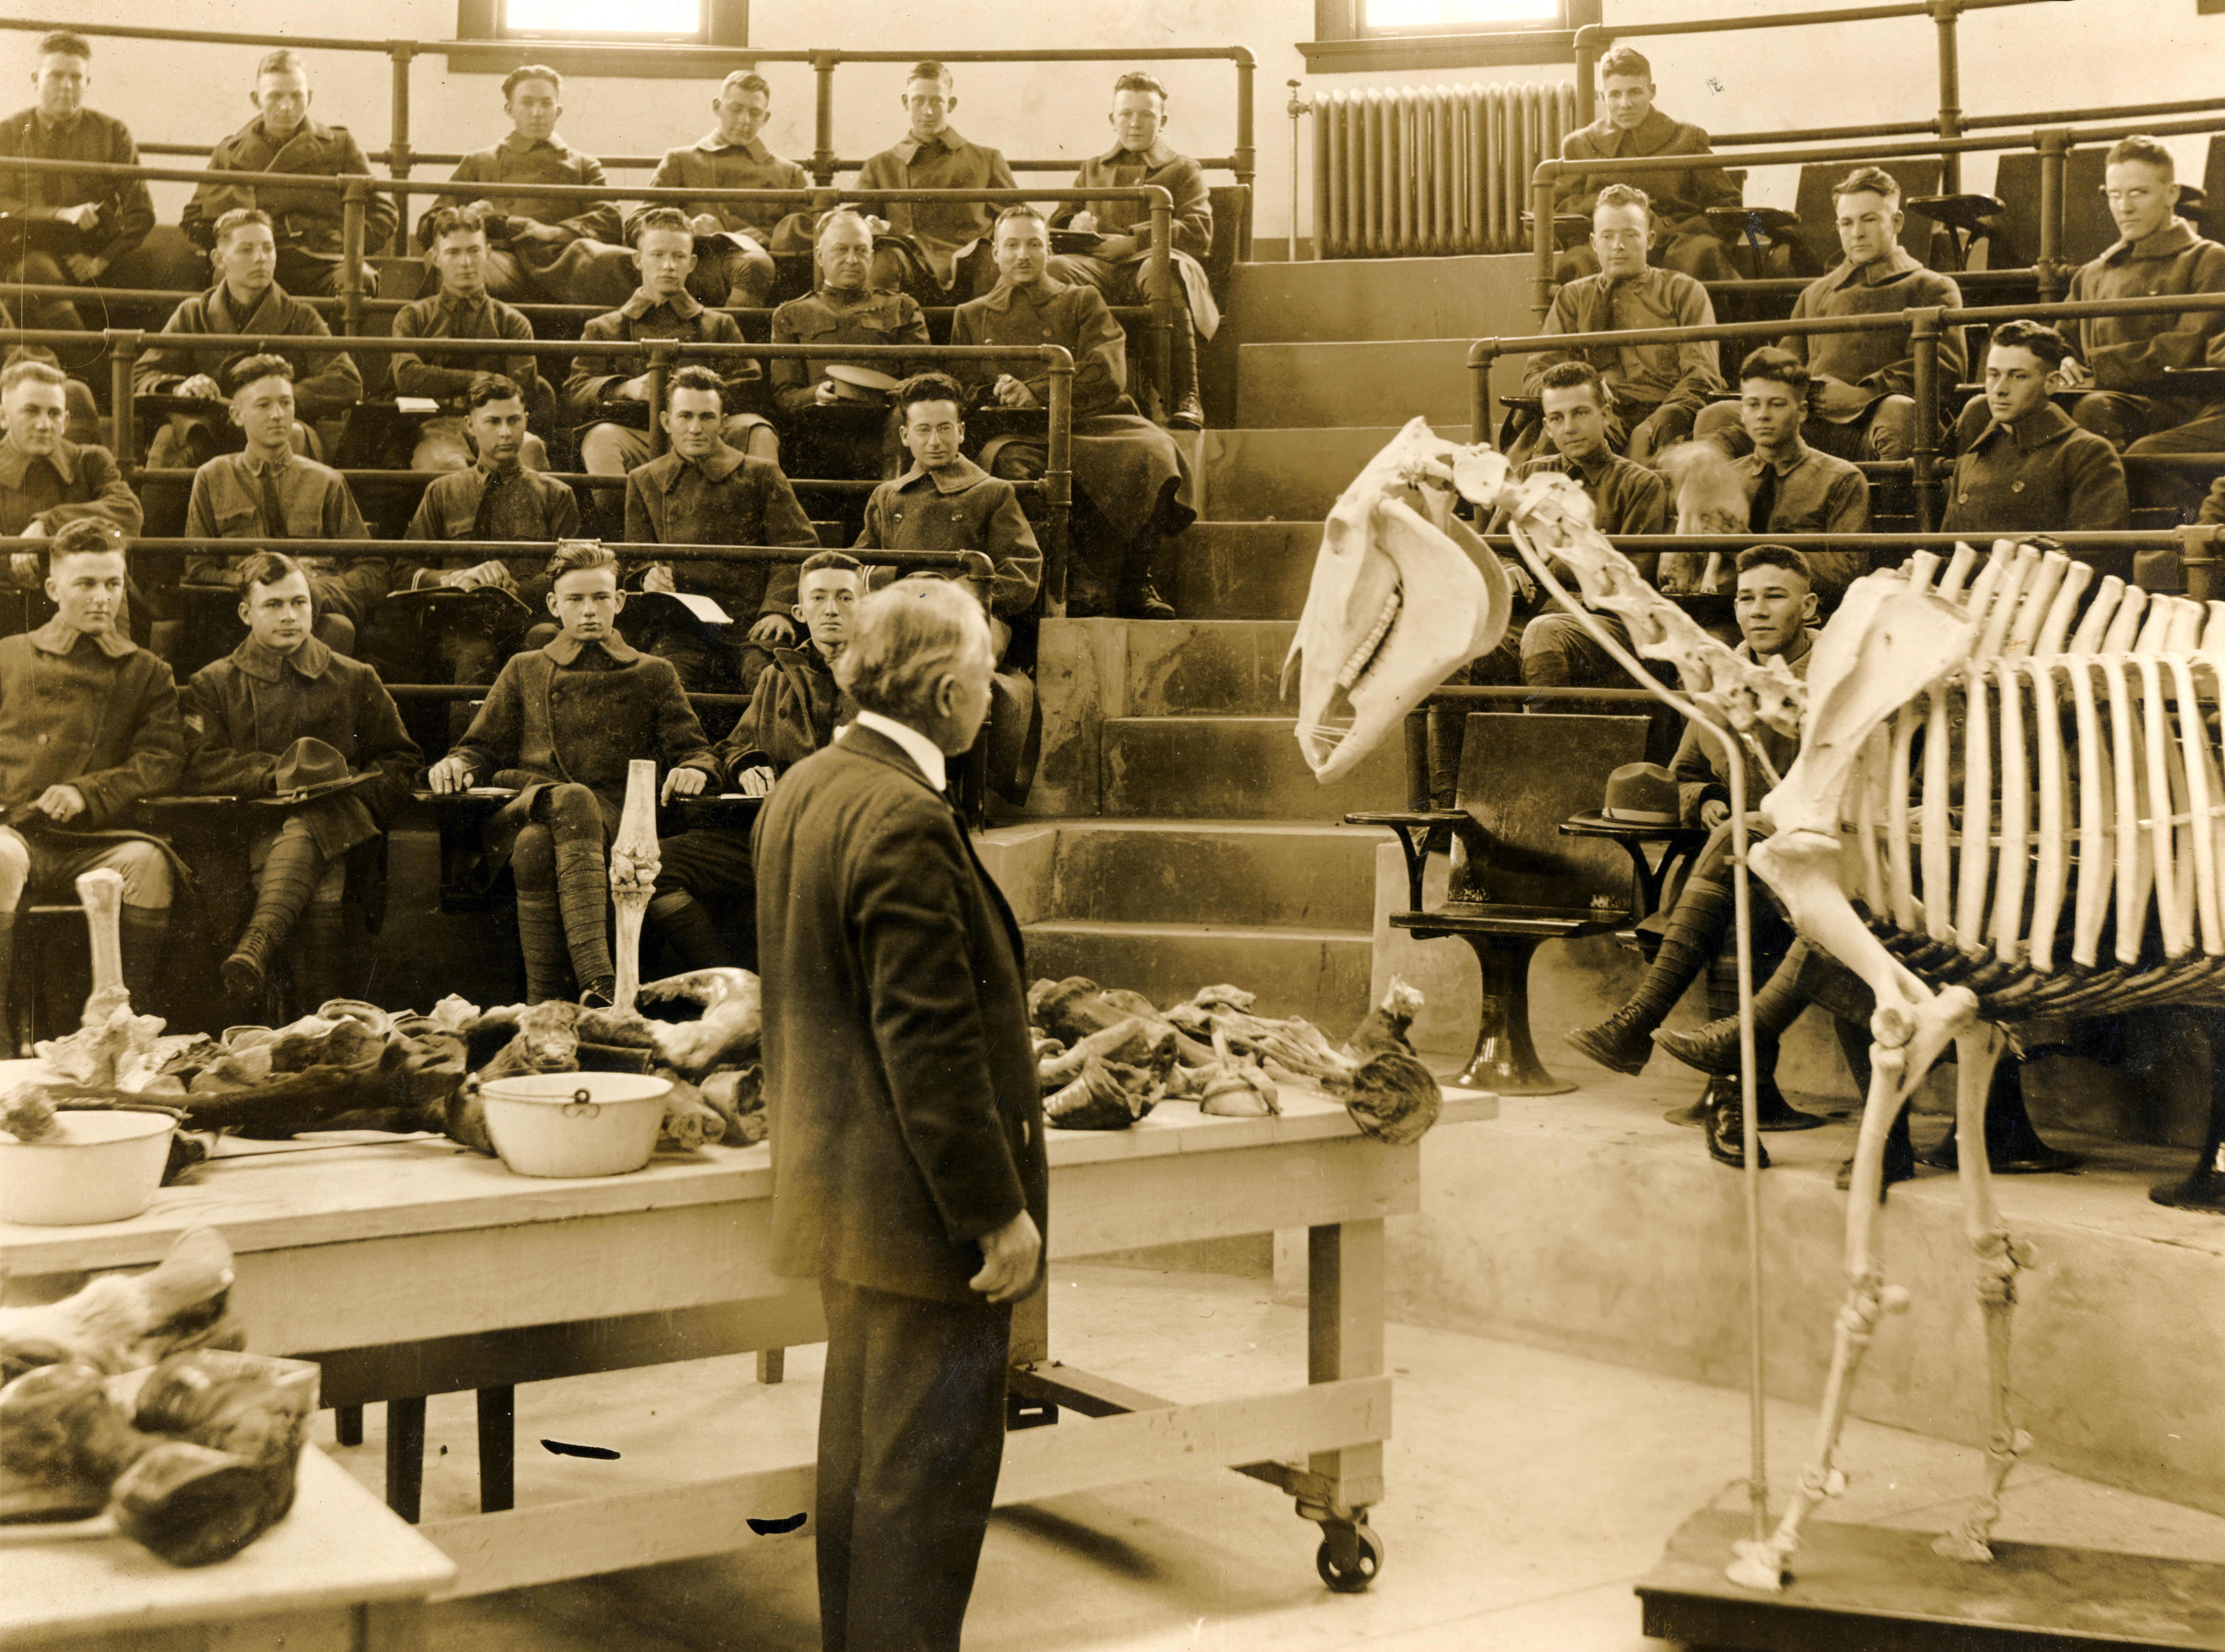 College of Veterinary Medicine & Biomedical Sciences Image Collection